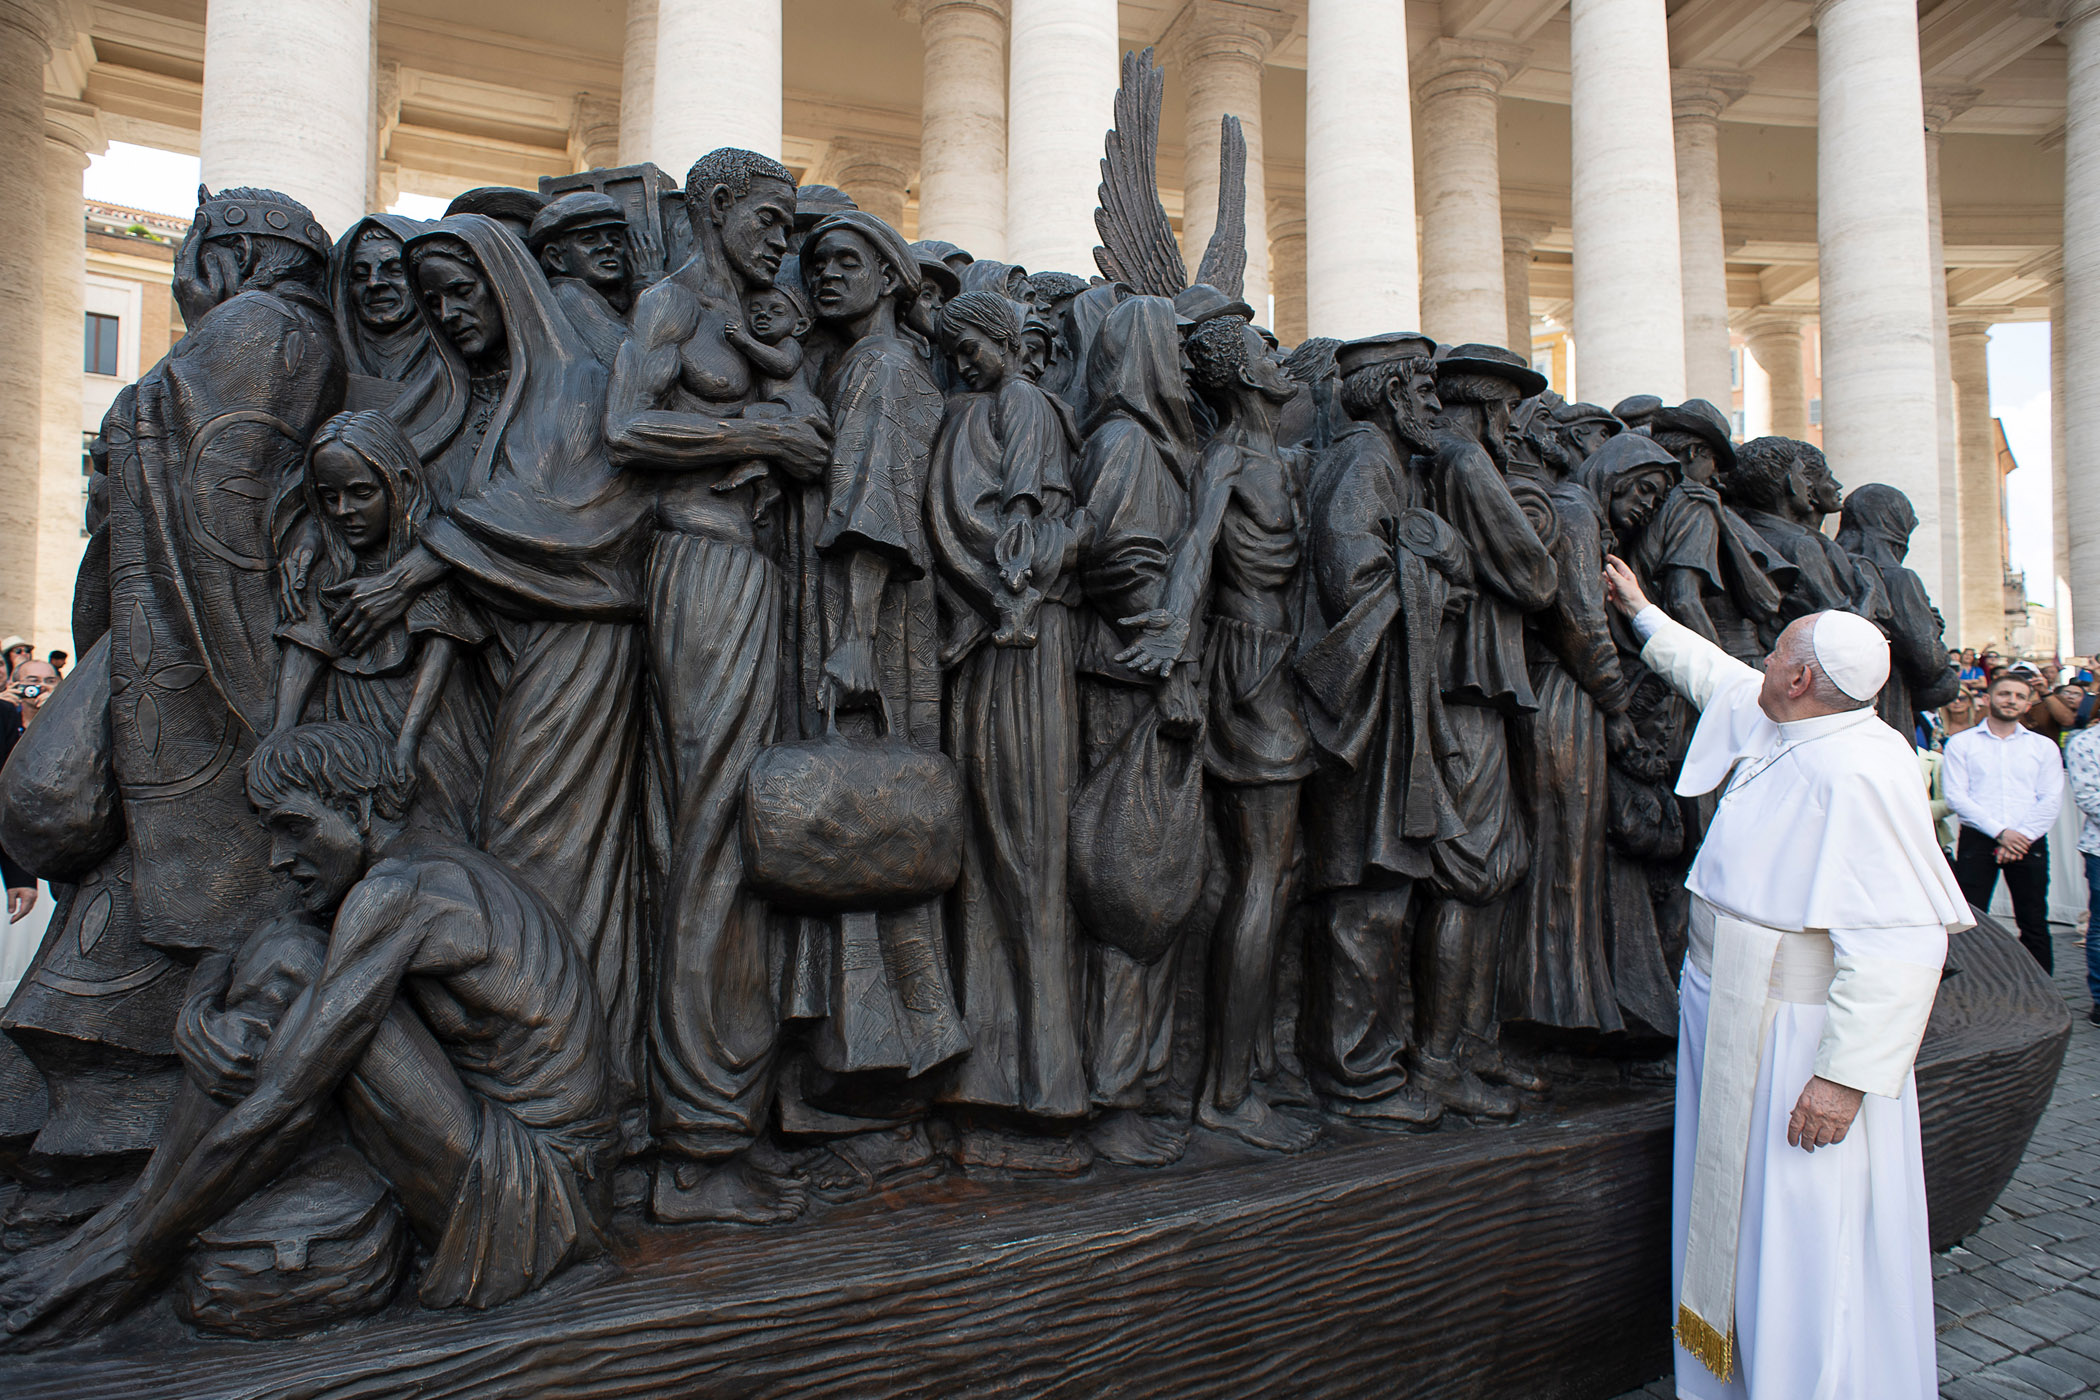 20190930T0558-538-CNS-POPE-MASS-MIGRANTS-REFUGEES